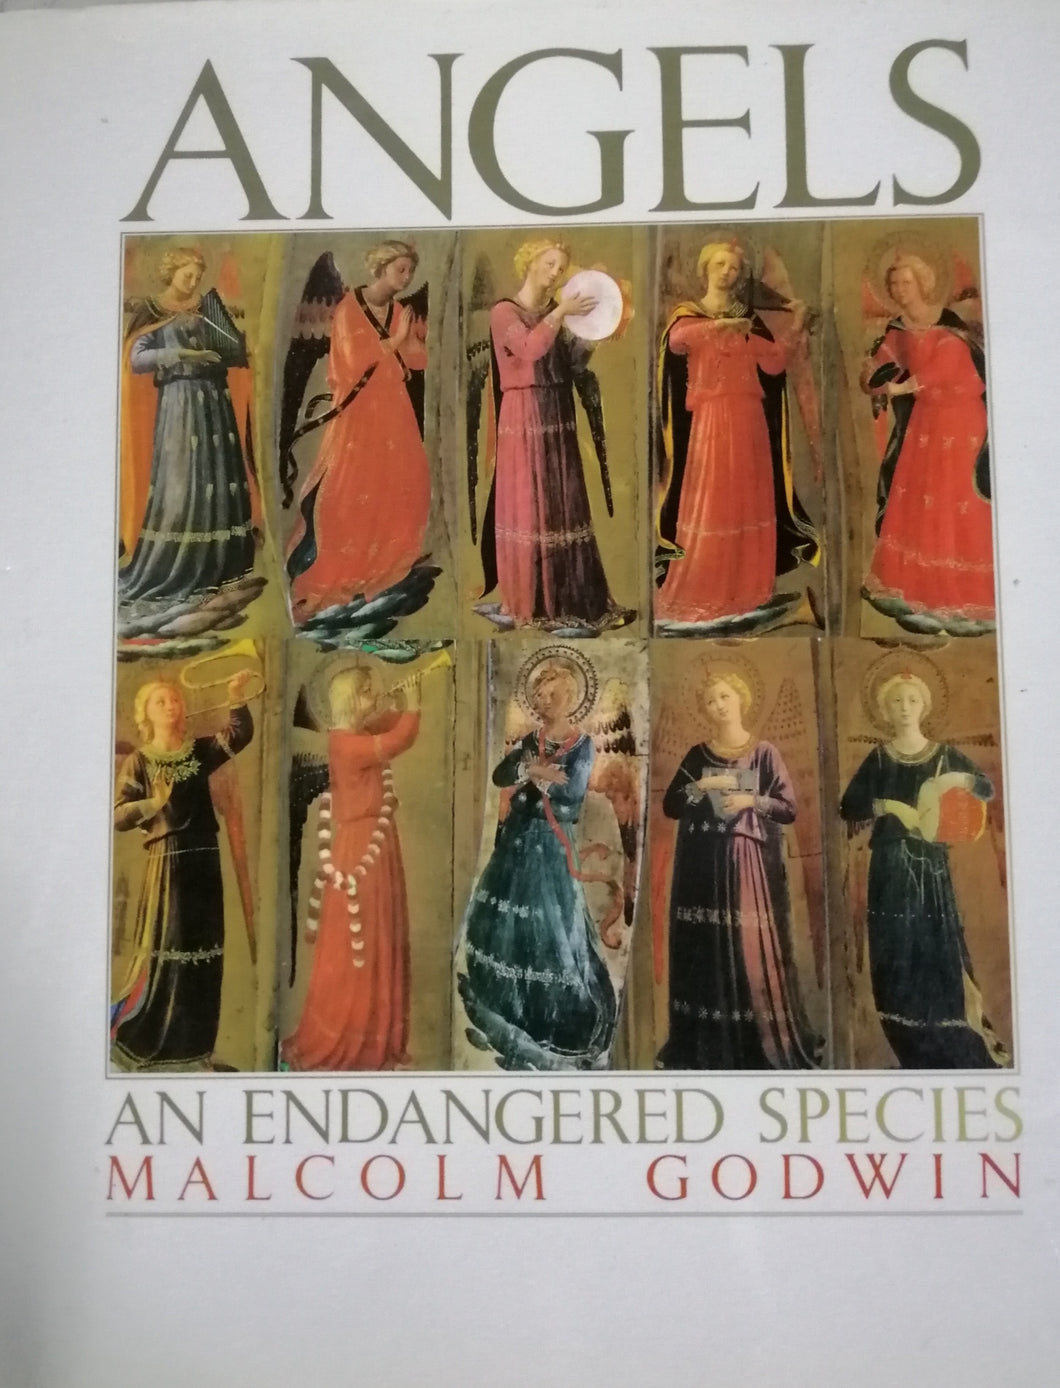 Angels anvendangered species by: Malcolm Godwin